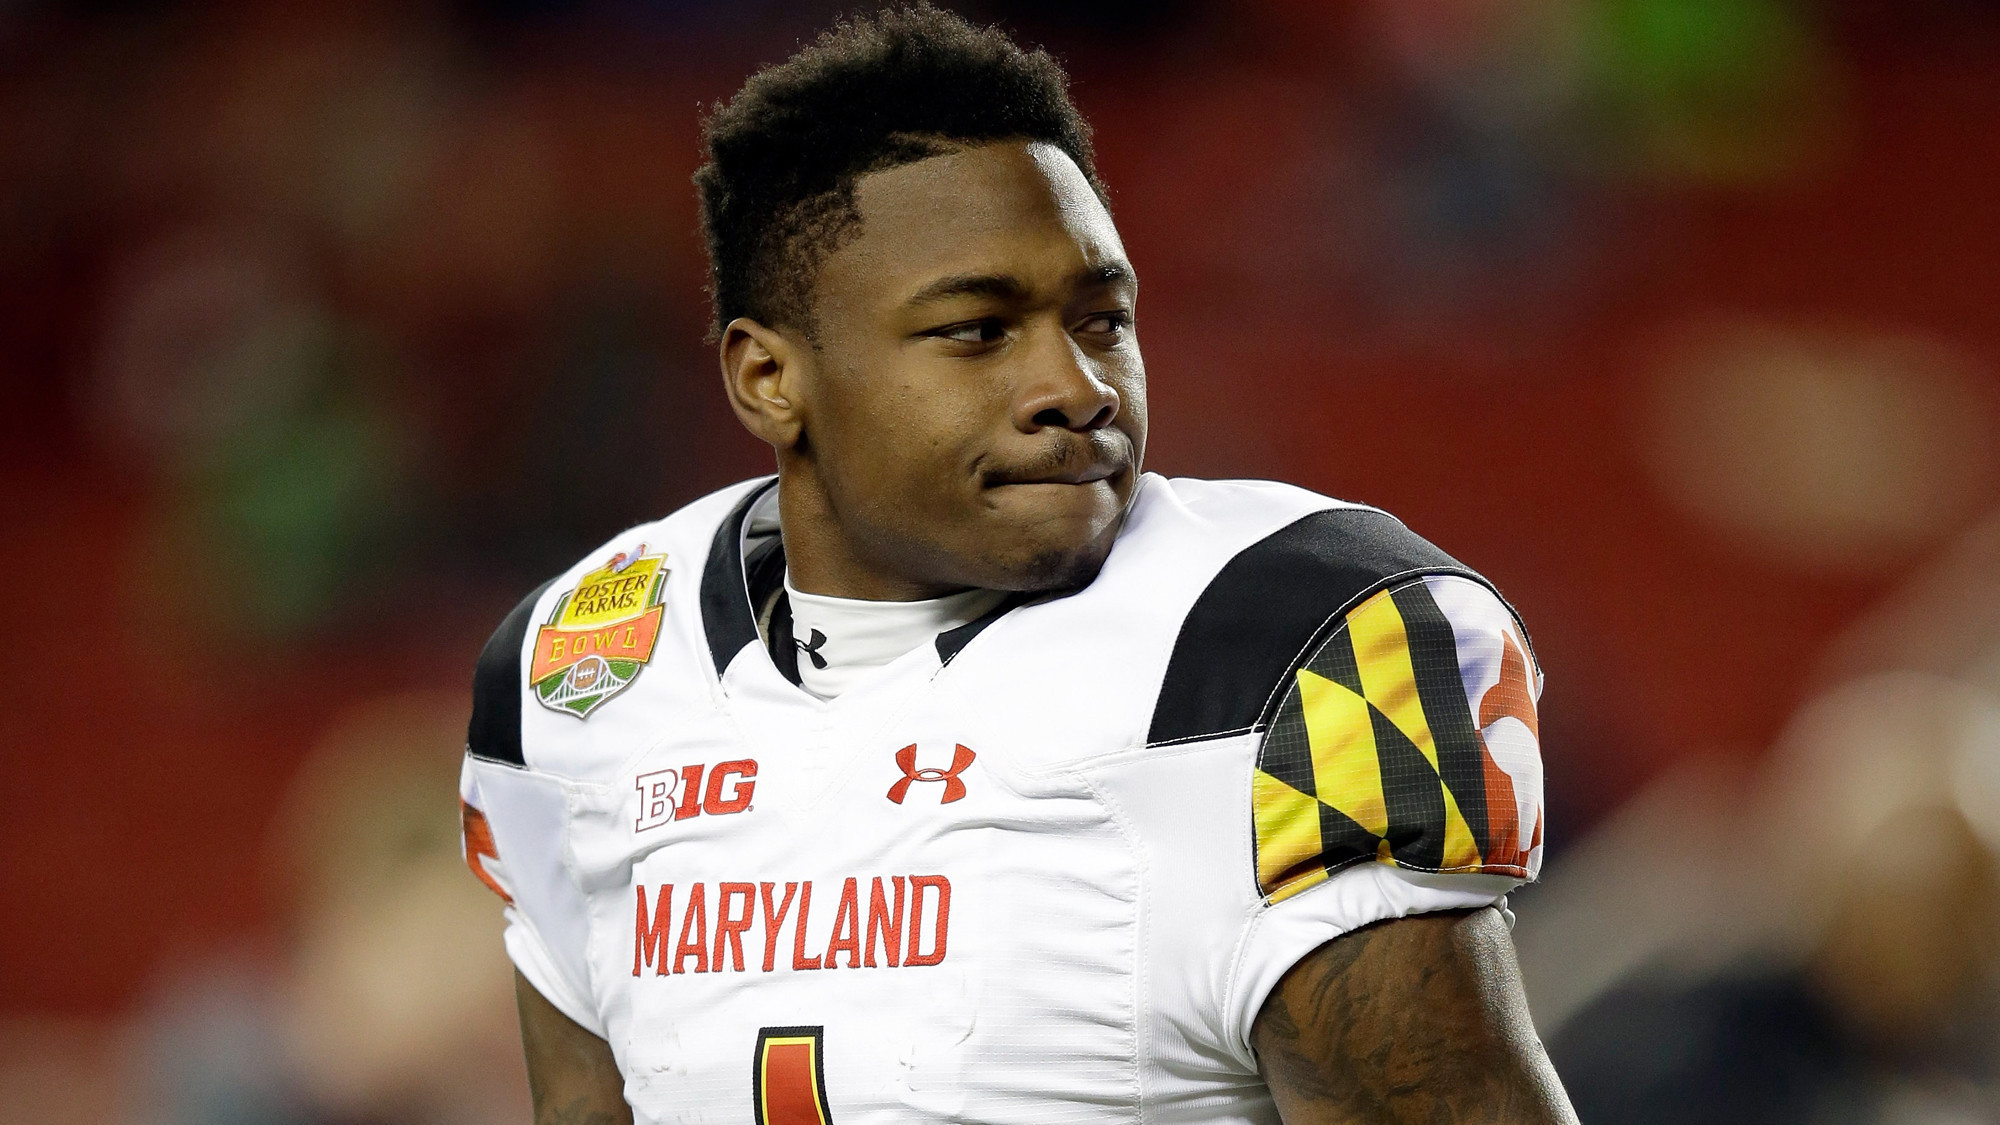 Vikings fifth round pick former Terps star Stefon Diggs says I